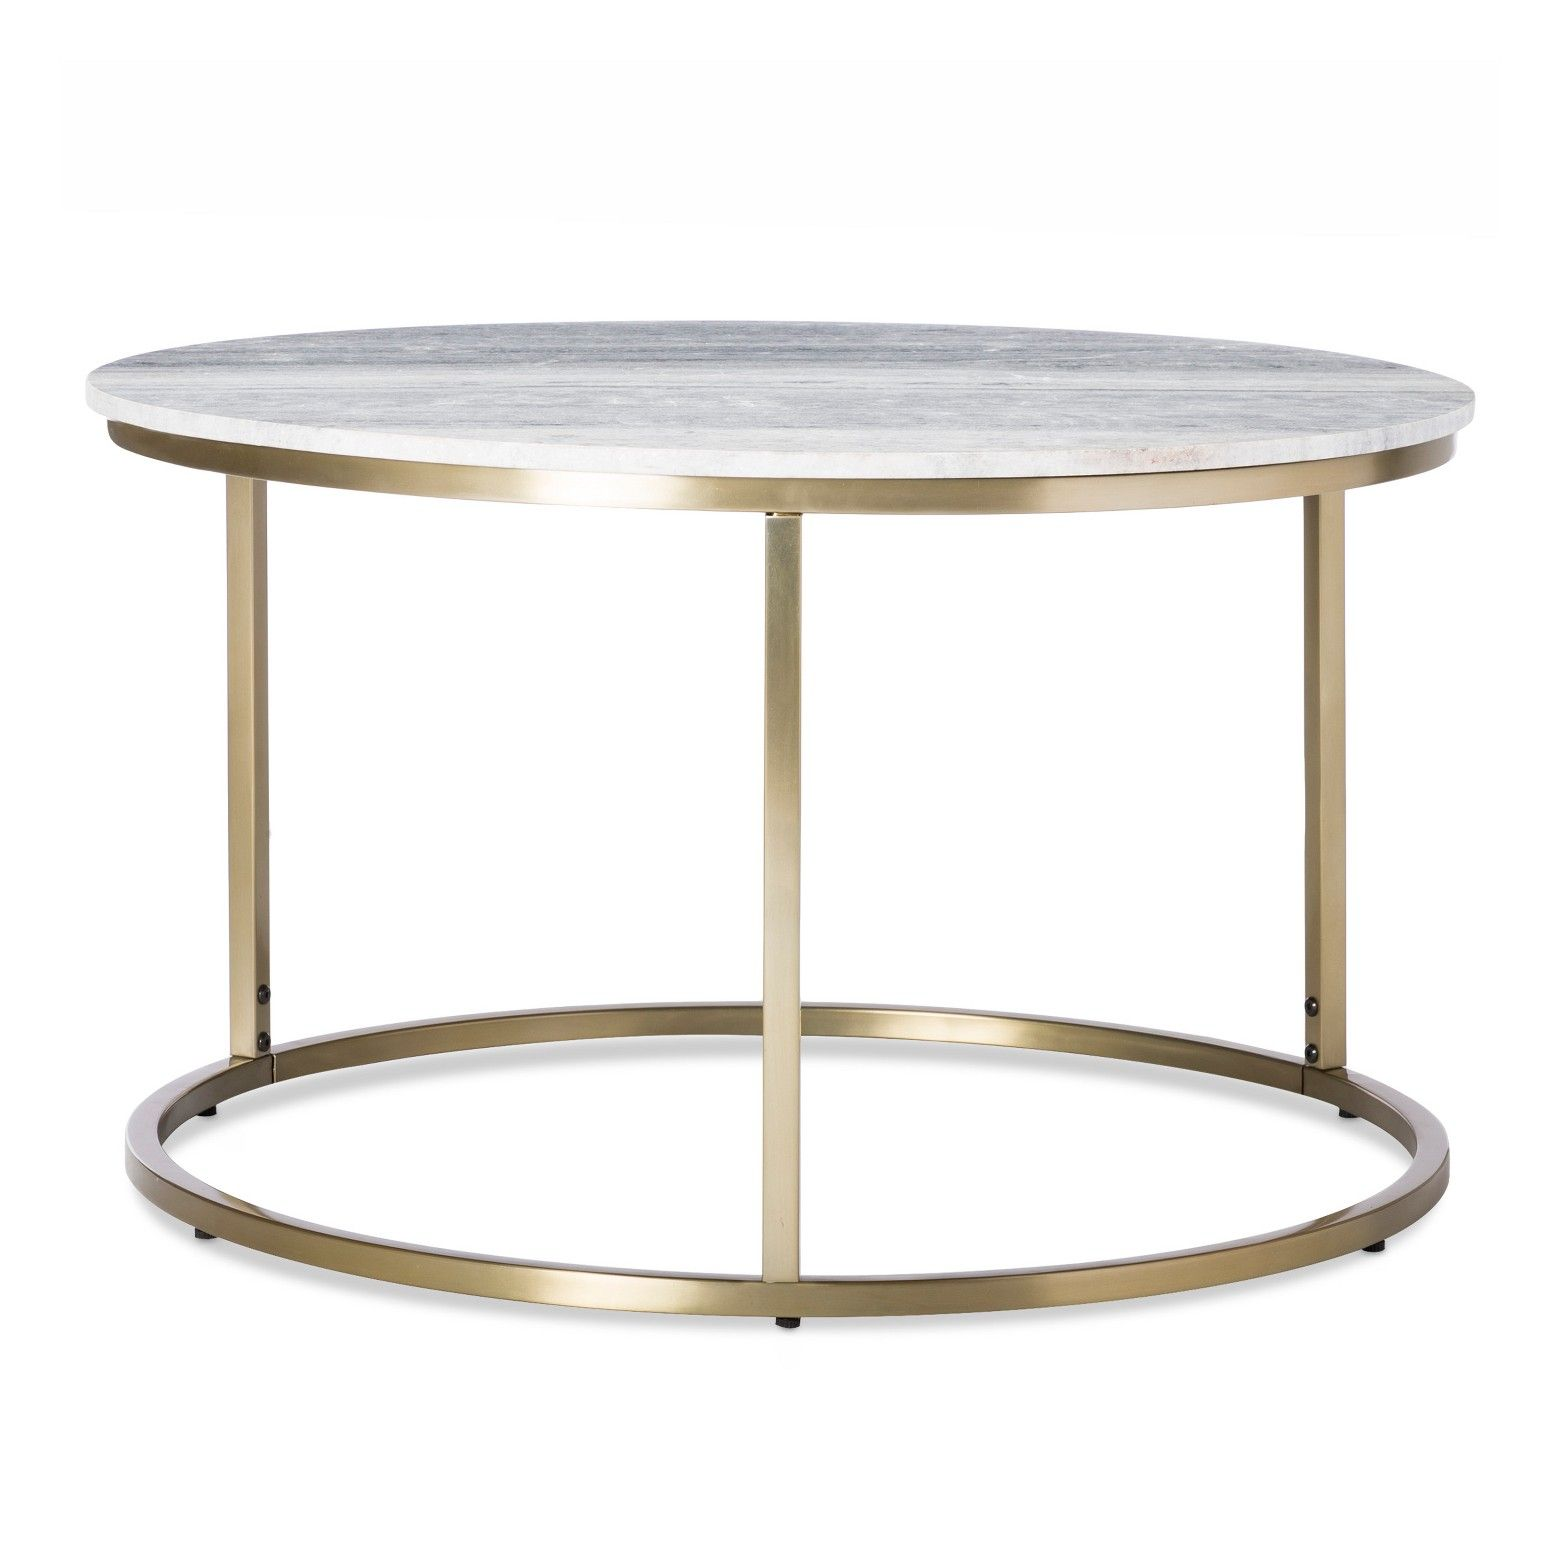 delectable target accent end tables white for bench and storage ott outdoor kijiji threshold tall cabinet gold living glass antique room round modern table furniture full size